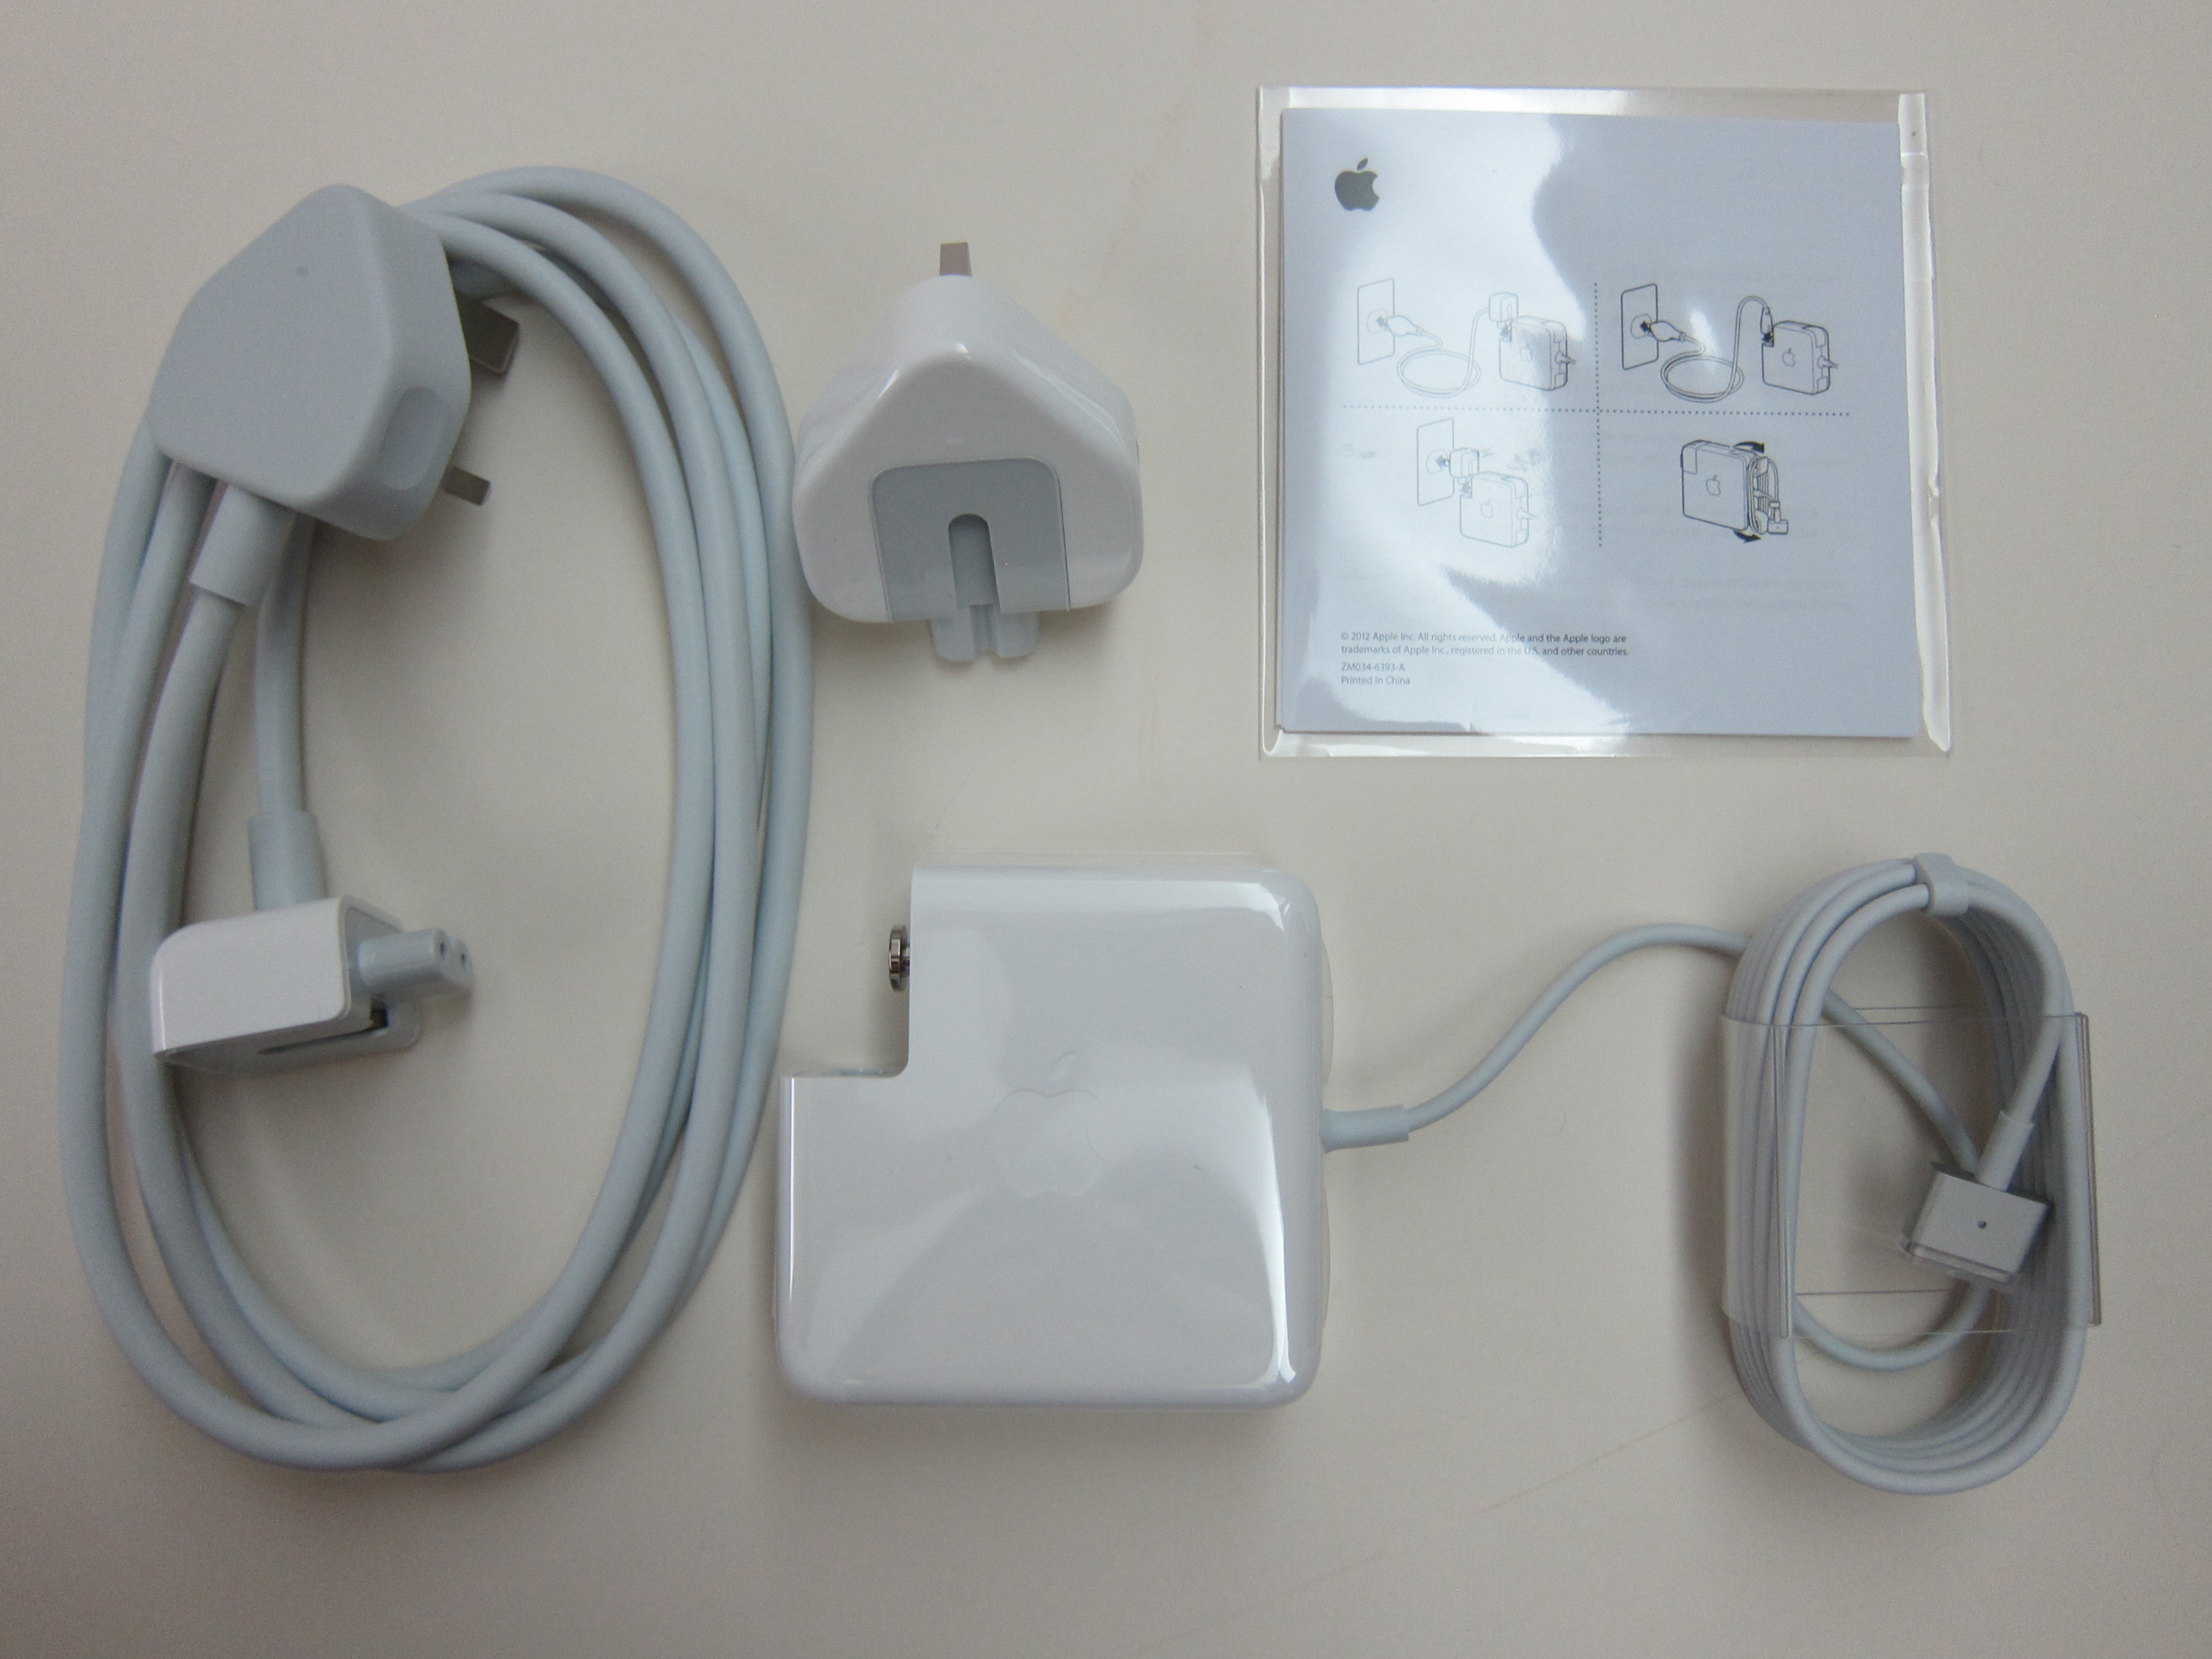 Apple 60w magsafe 2 power adapter blog for Mac due the box